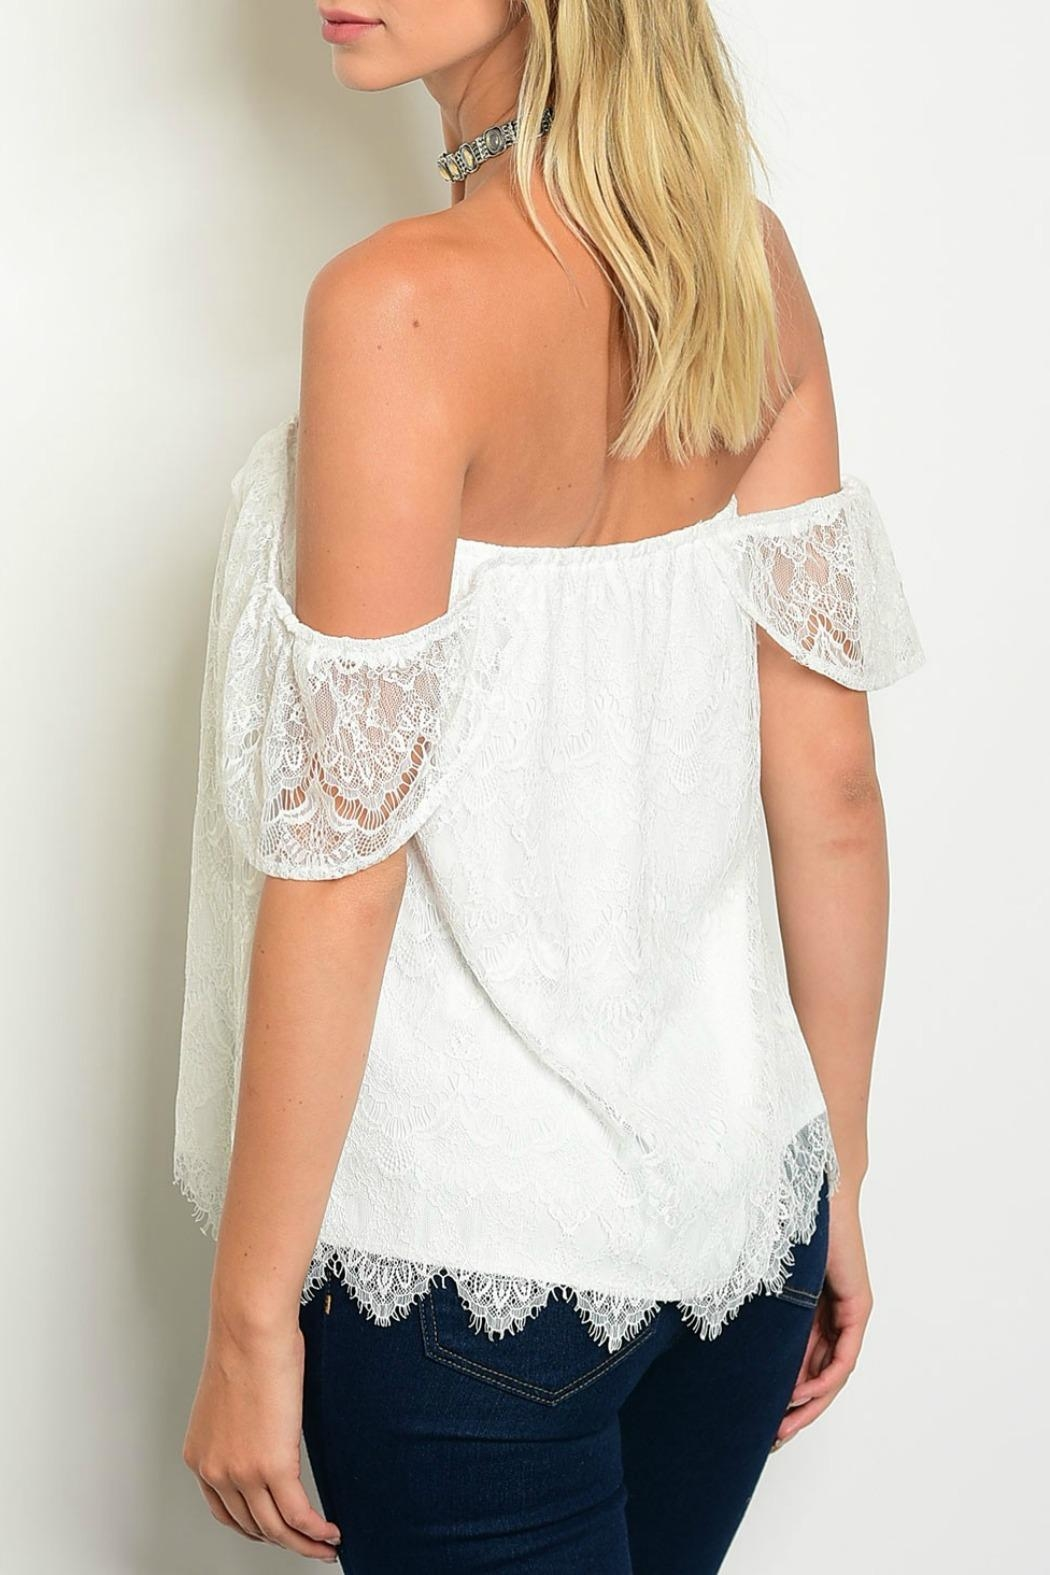 Jella Couture Taylor Lace Top - Front Full Image